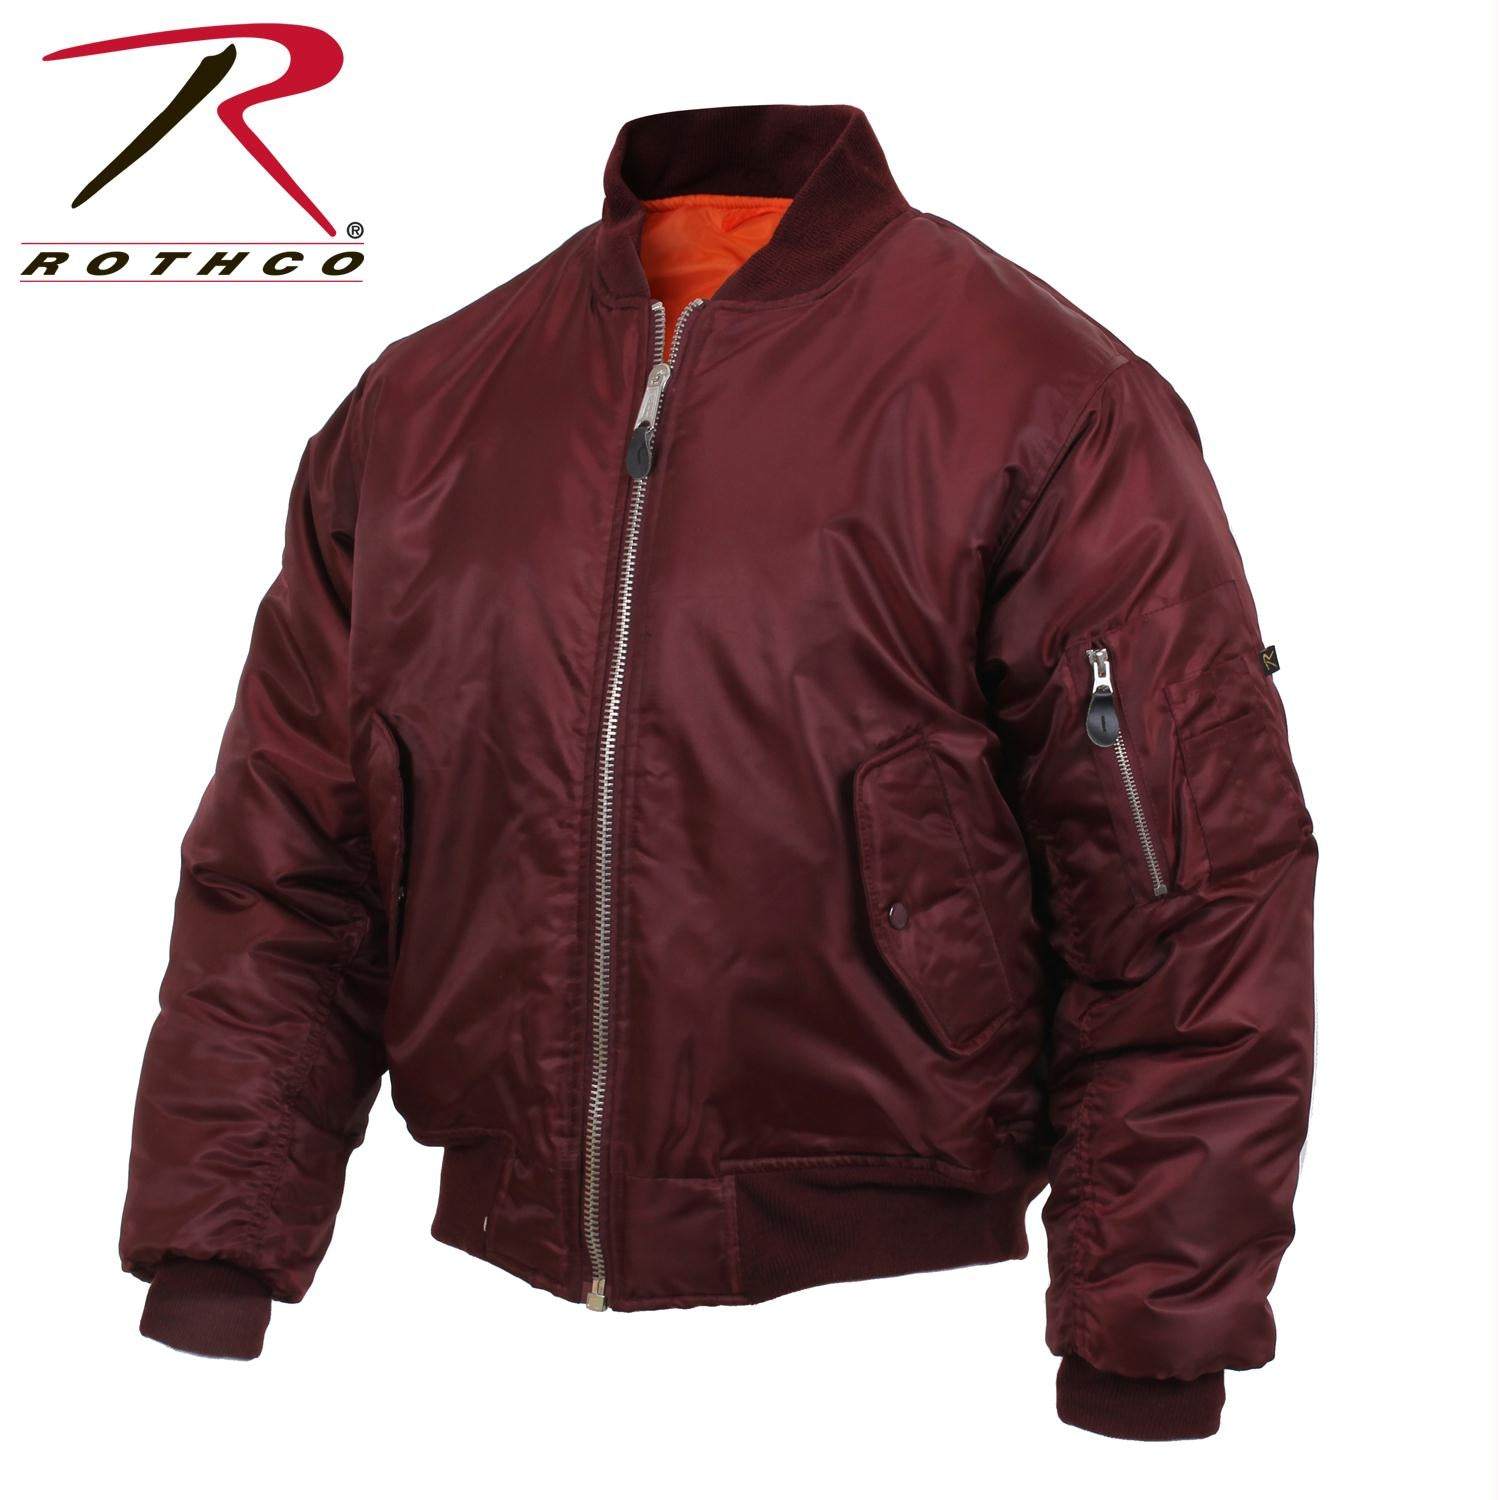 Rothco MA-1 Flight Jacket - Maroon / 4XL